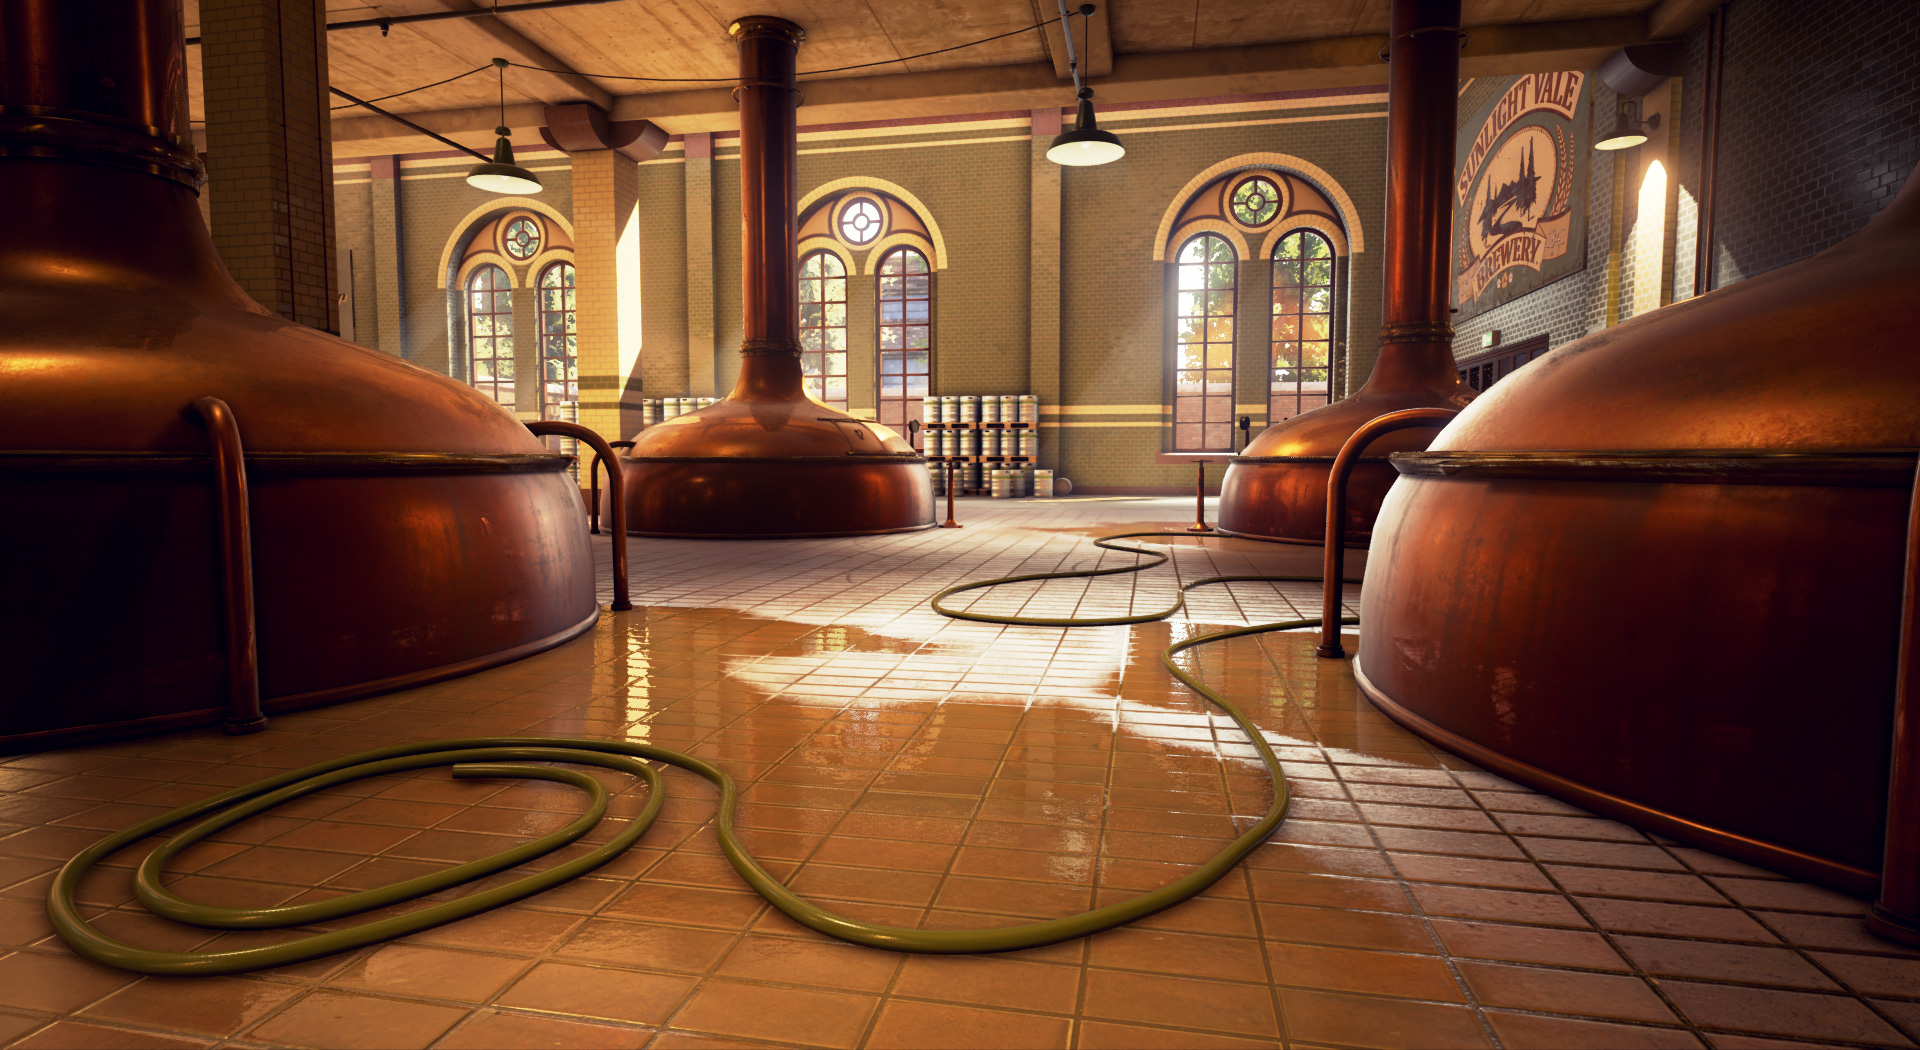 unreal 4 brewery screenshot 03